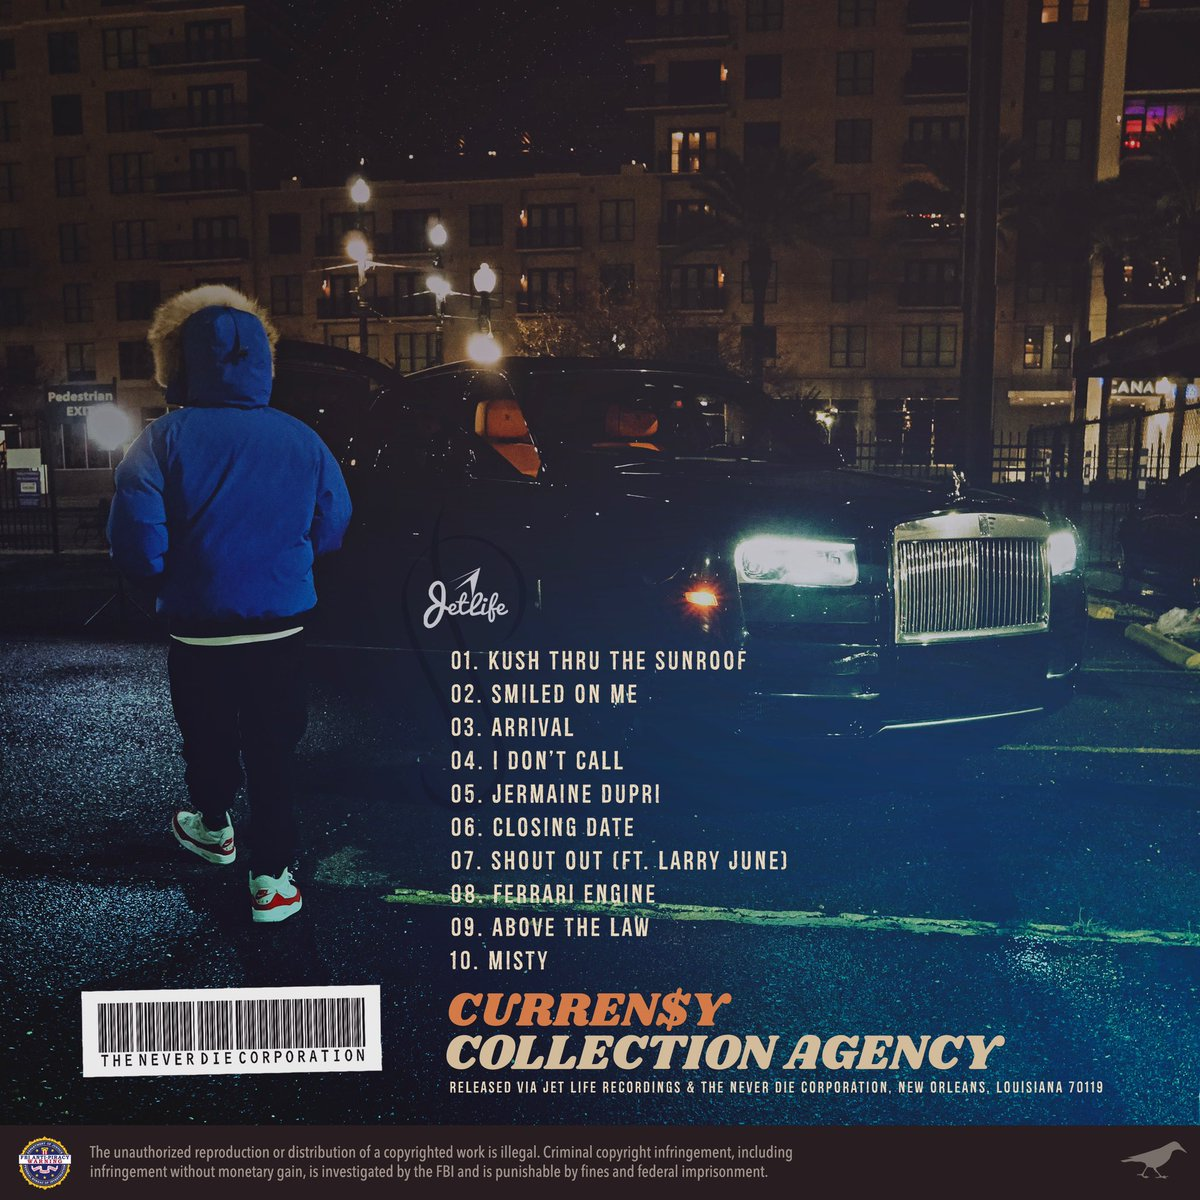 Replying to @CurrenSy_Spitta: Friday! Collection Agency